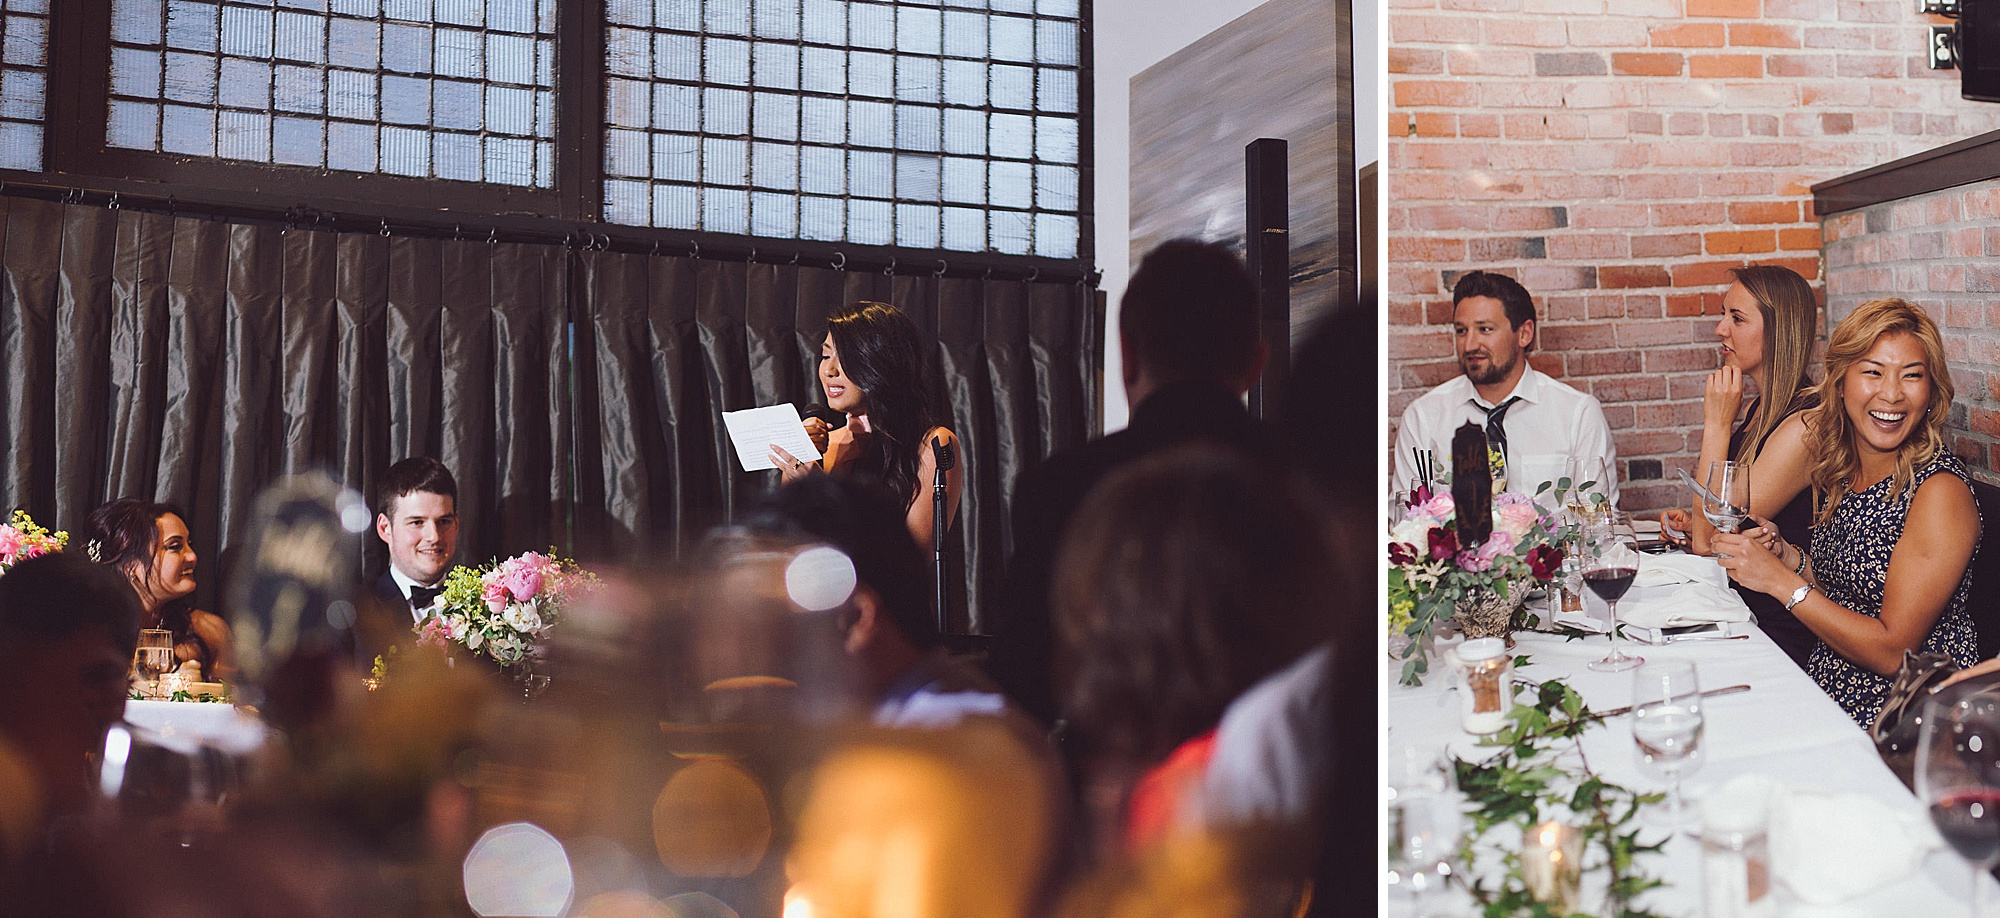 Maid of honour shares speech with newly married couple